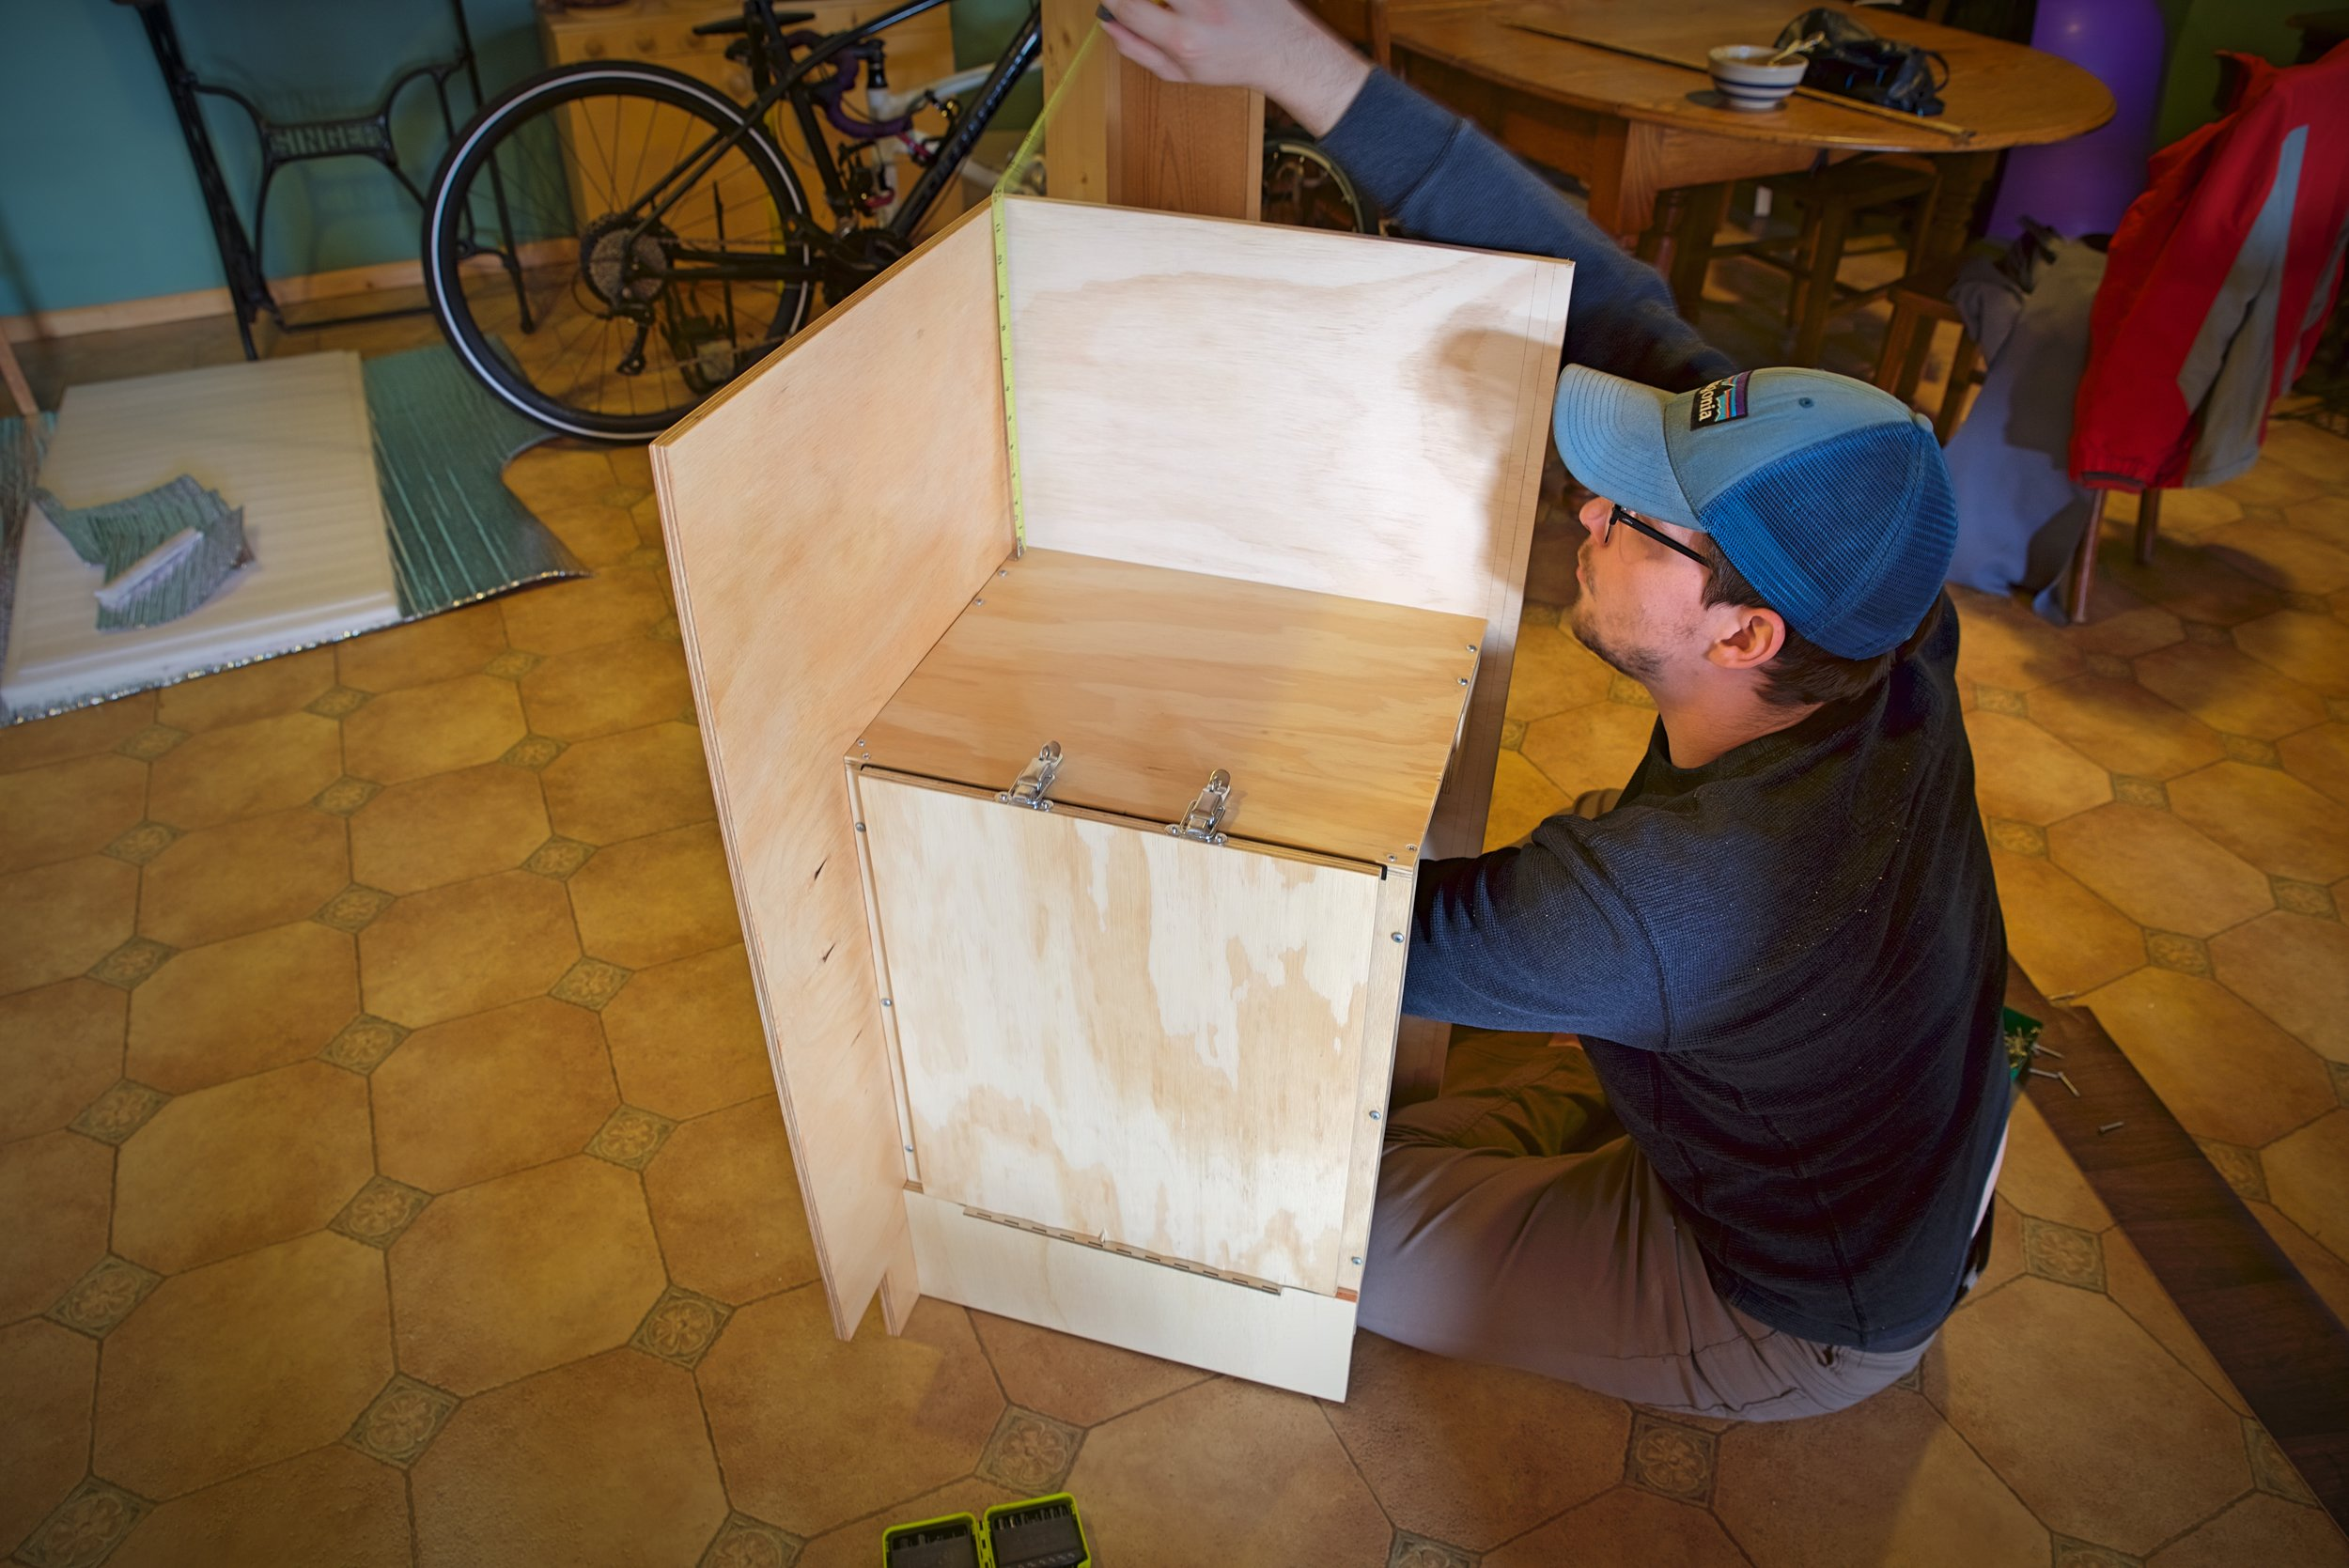 The door is inset from the walls of the larger cabinet, because it needed to be able to swing open within the face frame of the cabinet.